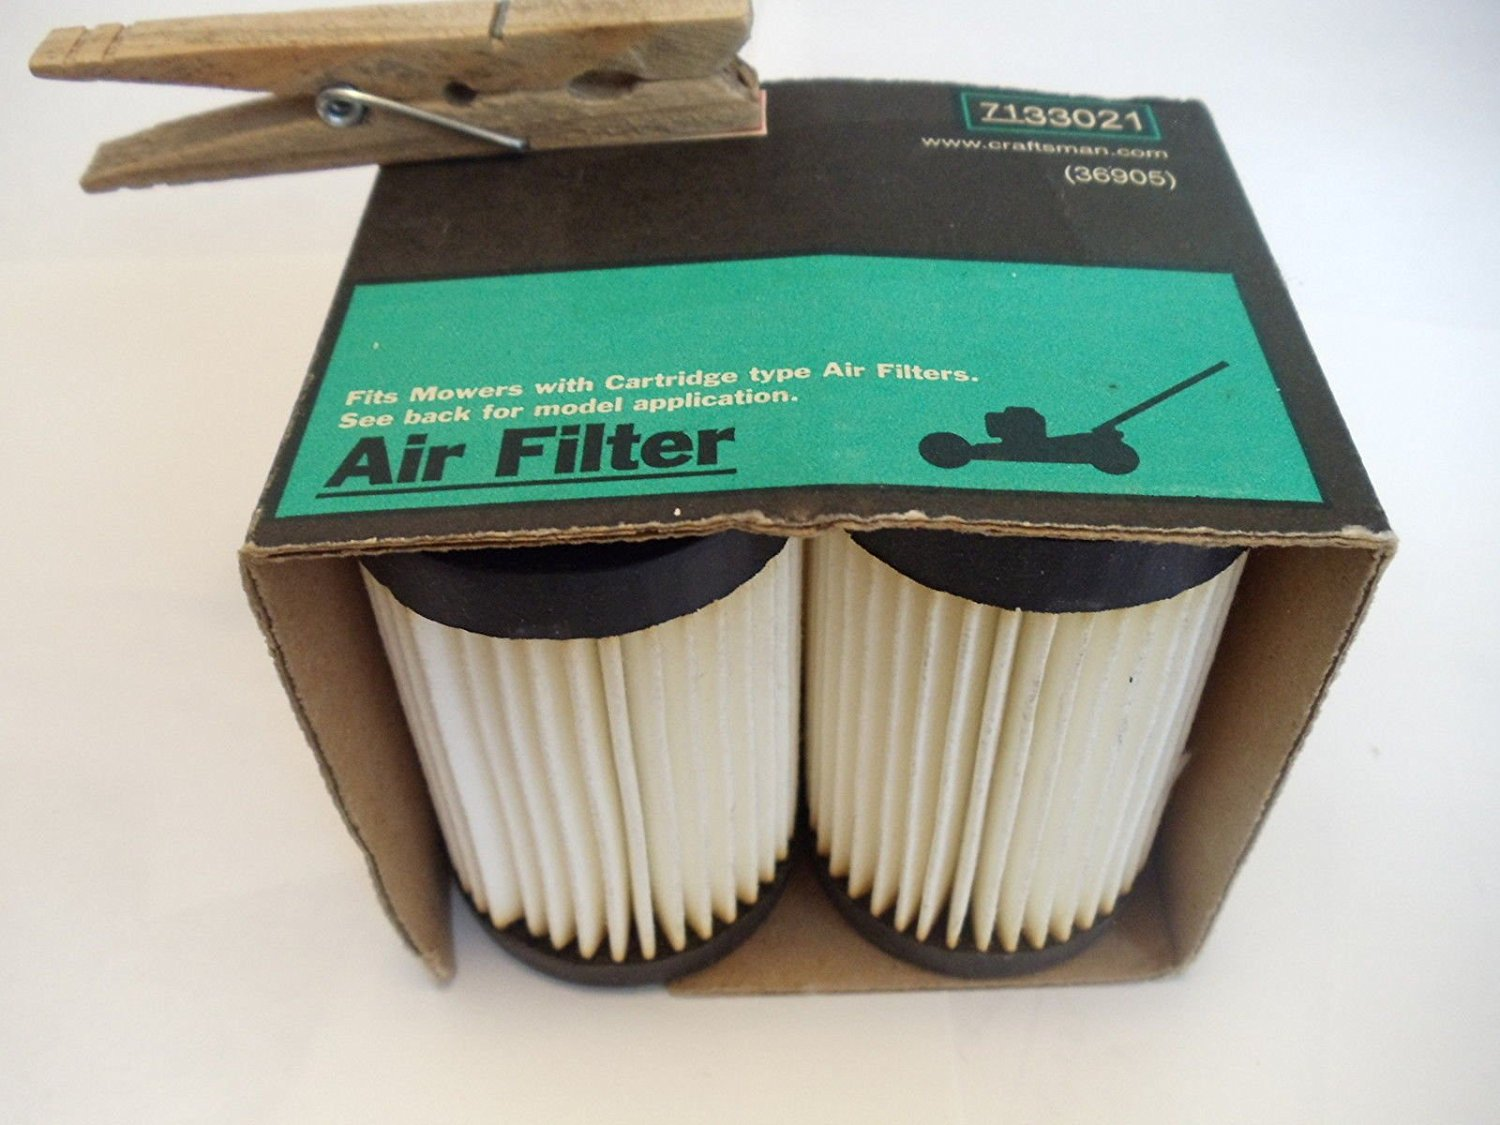 (Ship from USA) (2) Craftsman #33021 Lawn Mower Air Filter for Eager 1 Engines Replaces #36905 /ITEM NO#8Y-IFW81854267128